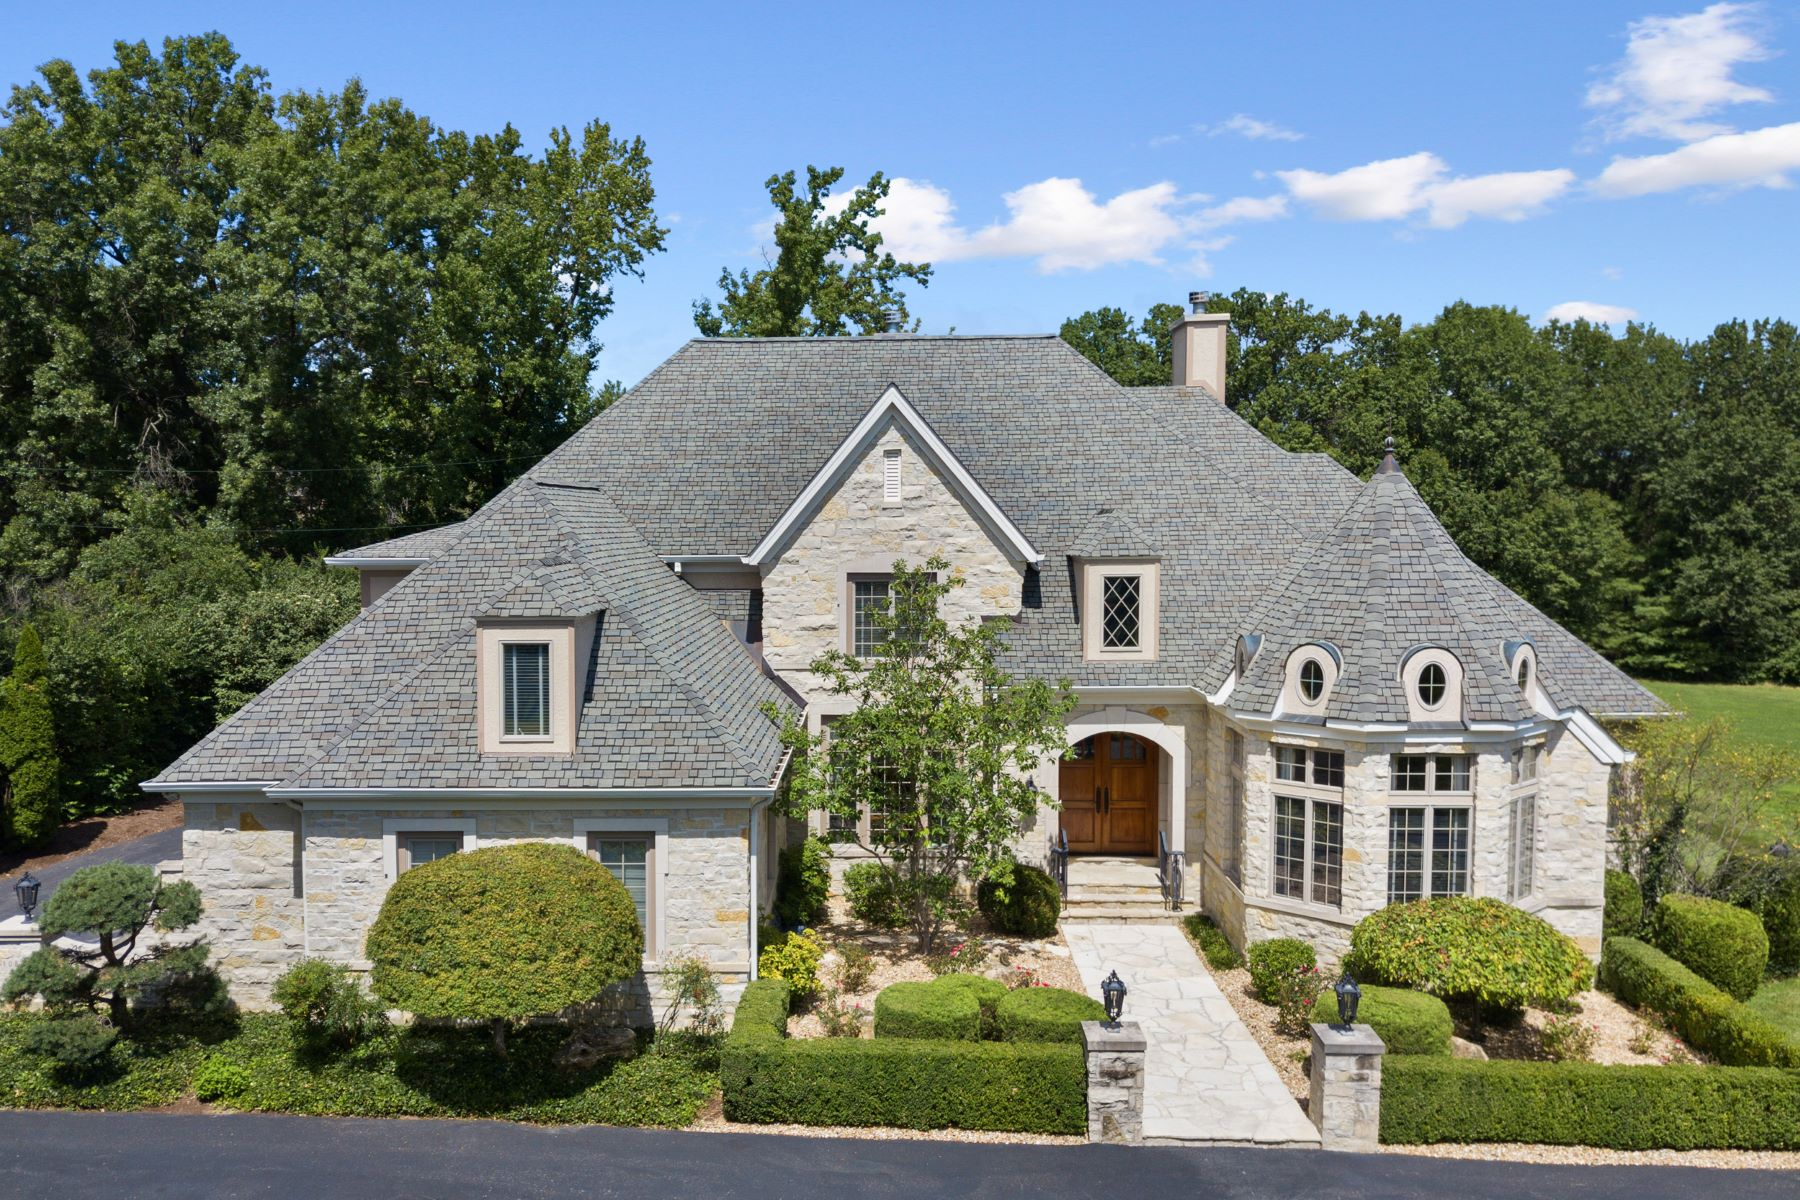 Single Family Homes for Sale at Outstanding Private Gated Stone 1.5 Story 10831 Ladue Road Creve Coeur, Missouri 63141 United States